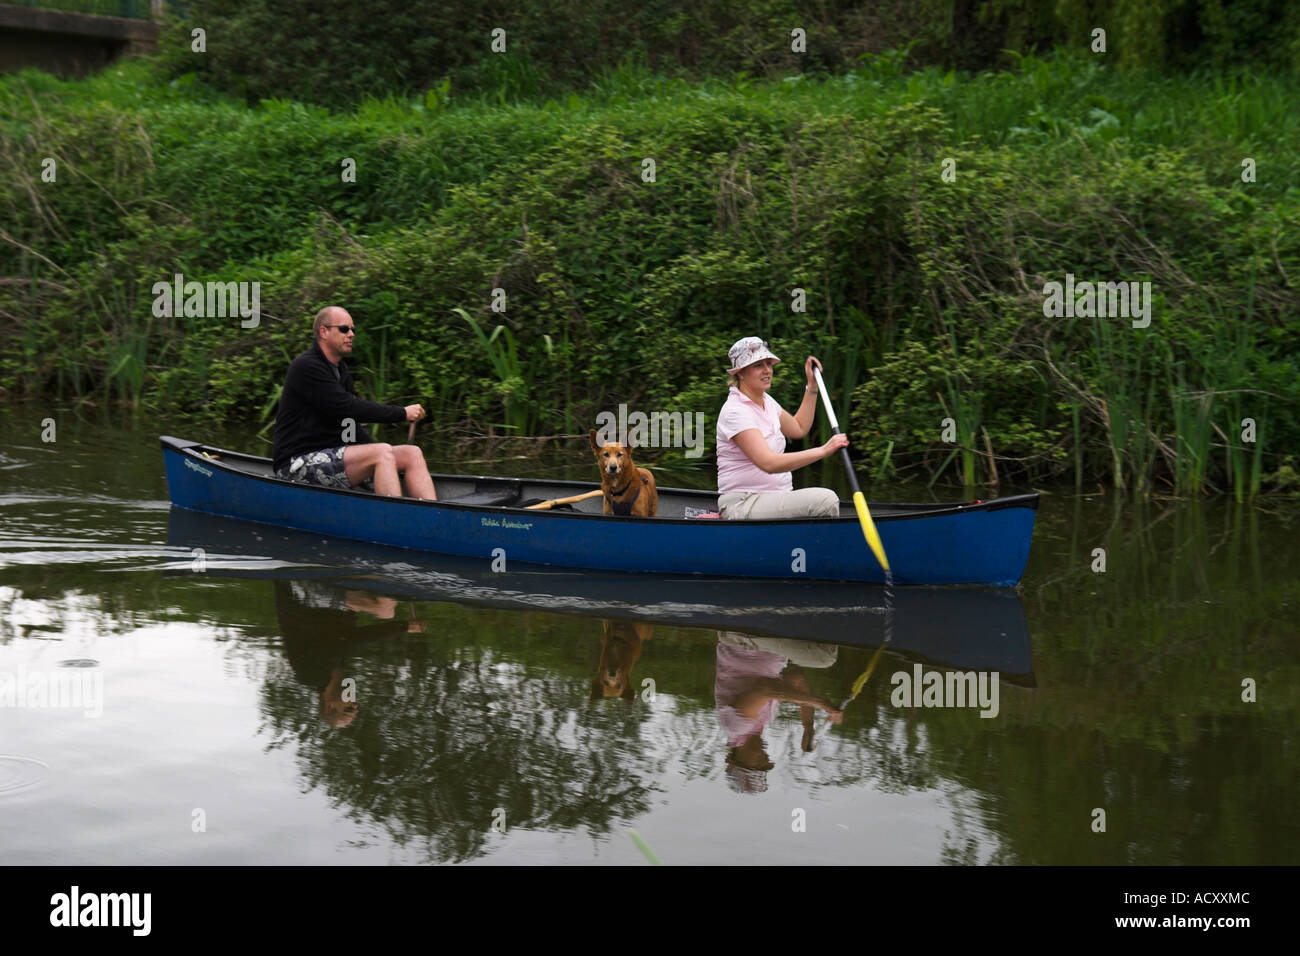 man and woman paddling a canadian type canoe on the Grand Western Canal, Tiverton, England. - Stock Image